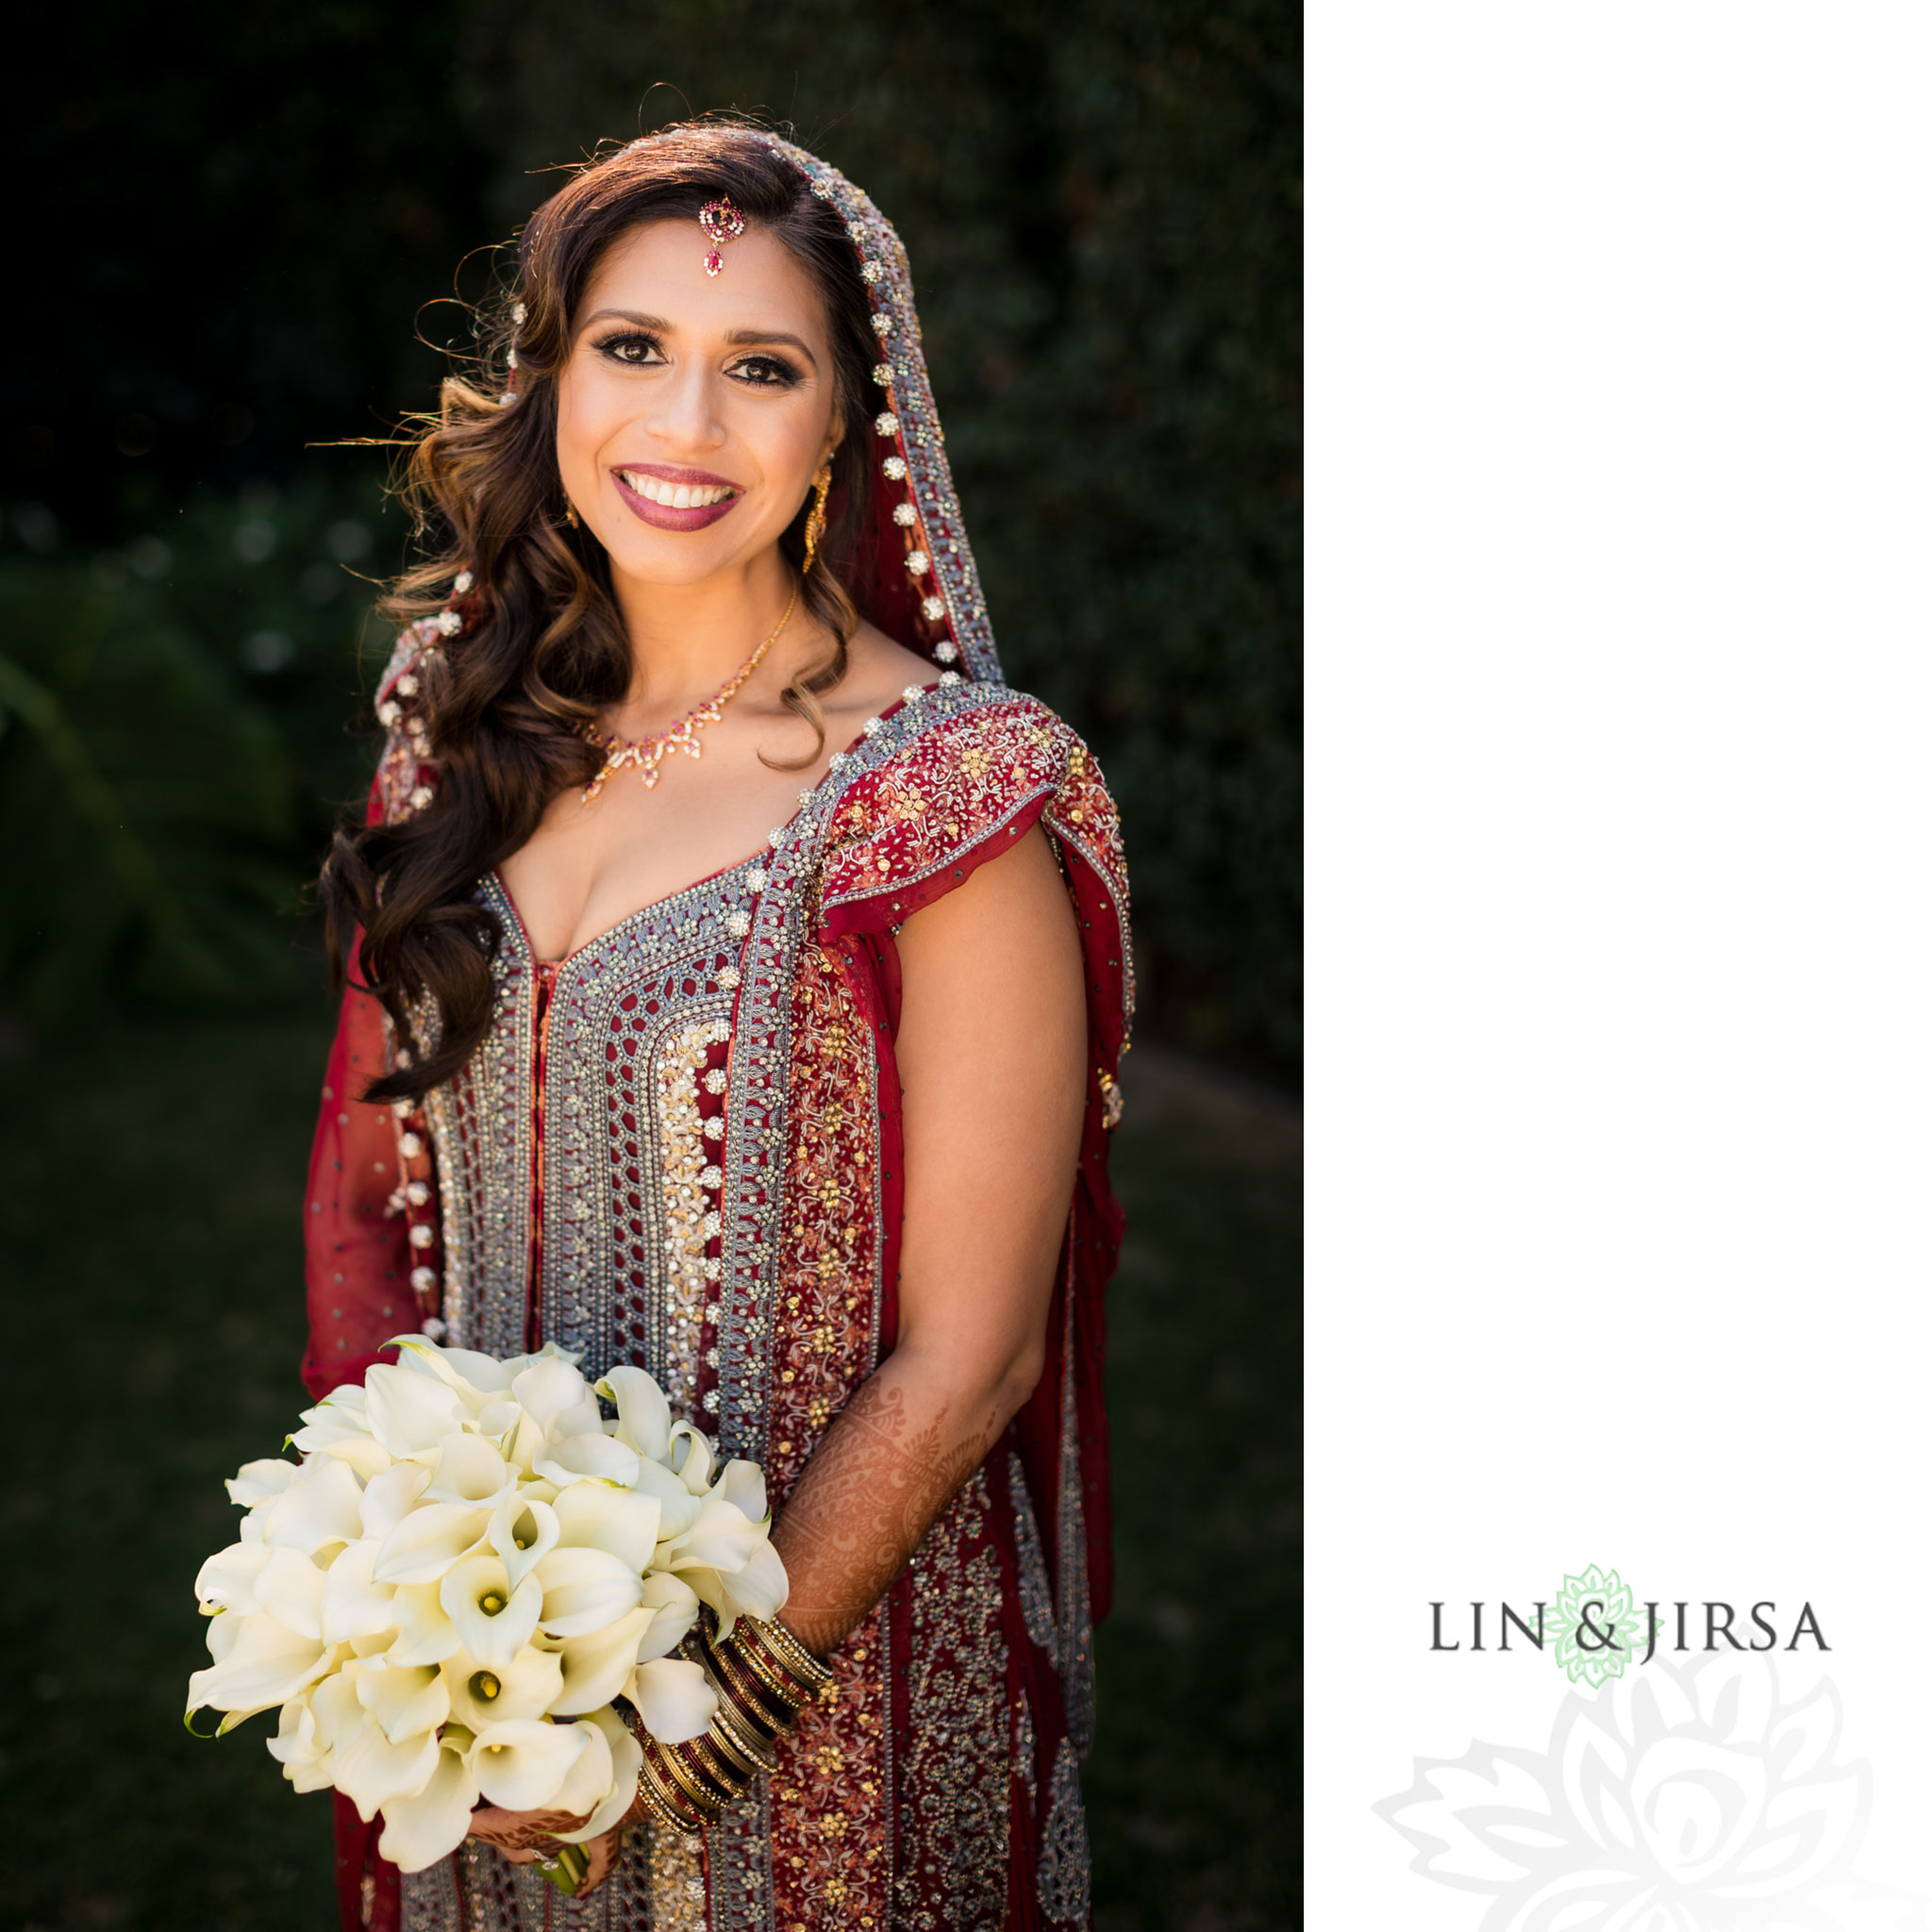 06 altadena town country club pakistani bride wedding photography